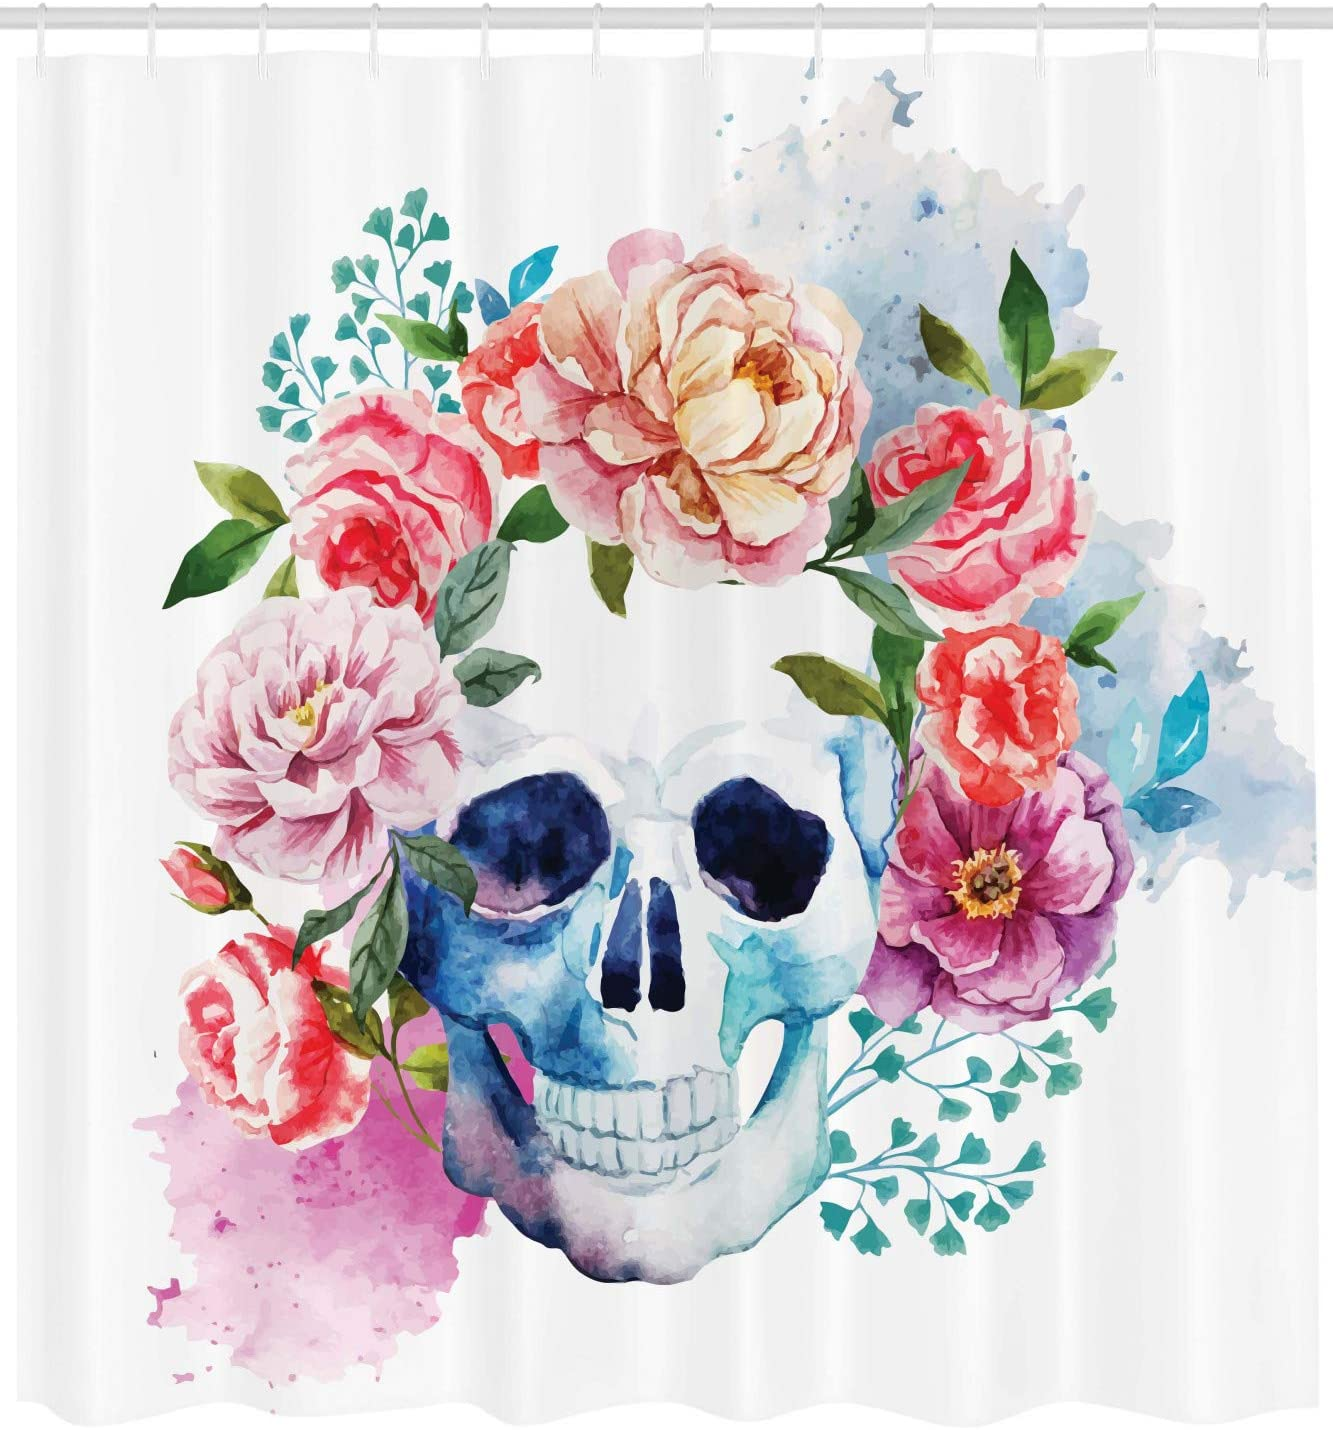 69W X 70L Inches Ambesonne Skulls Decorations Shower Curtain Set Multi Bathroom Accessories Colorful Ornate Mexican Sugar Skull Set with Flower and Heart Pattern Calavera Humor Art